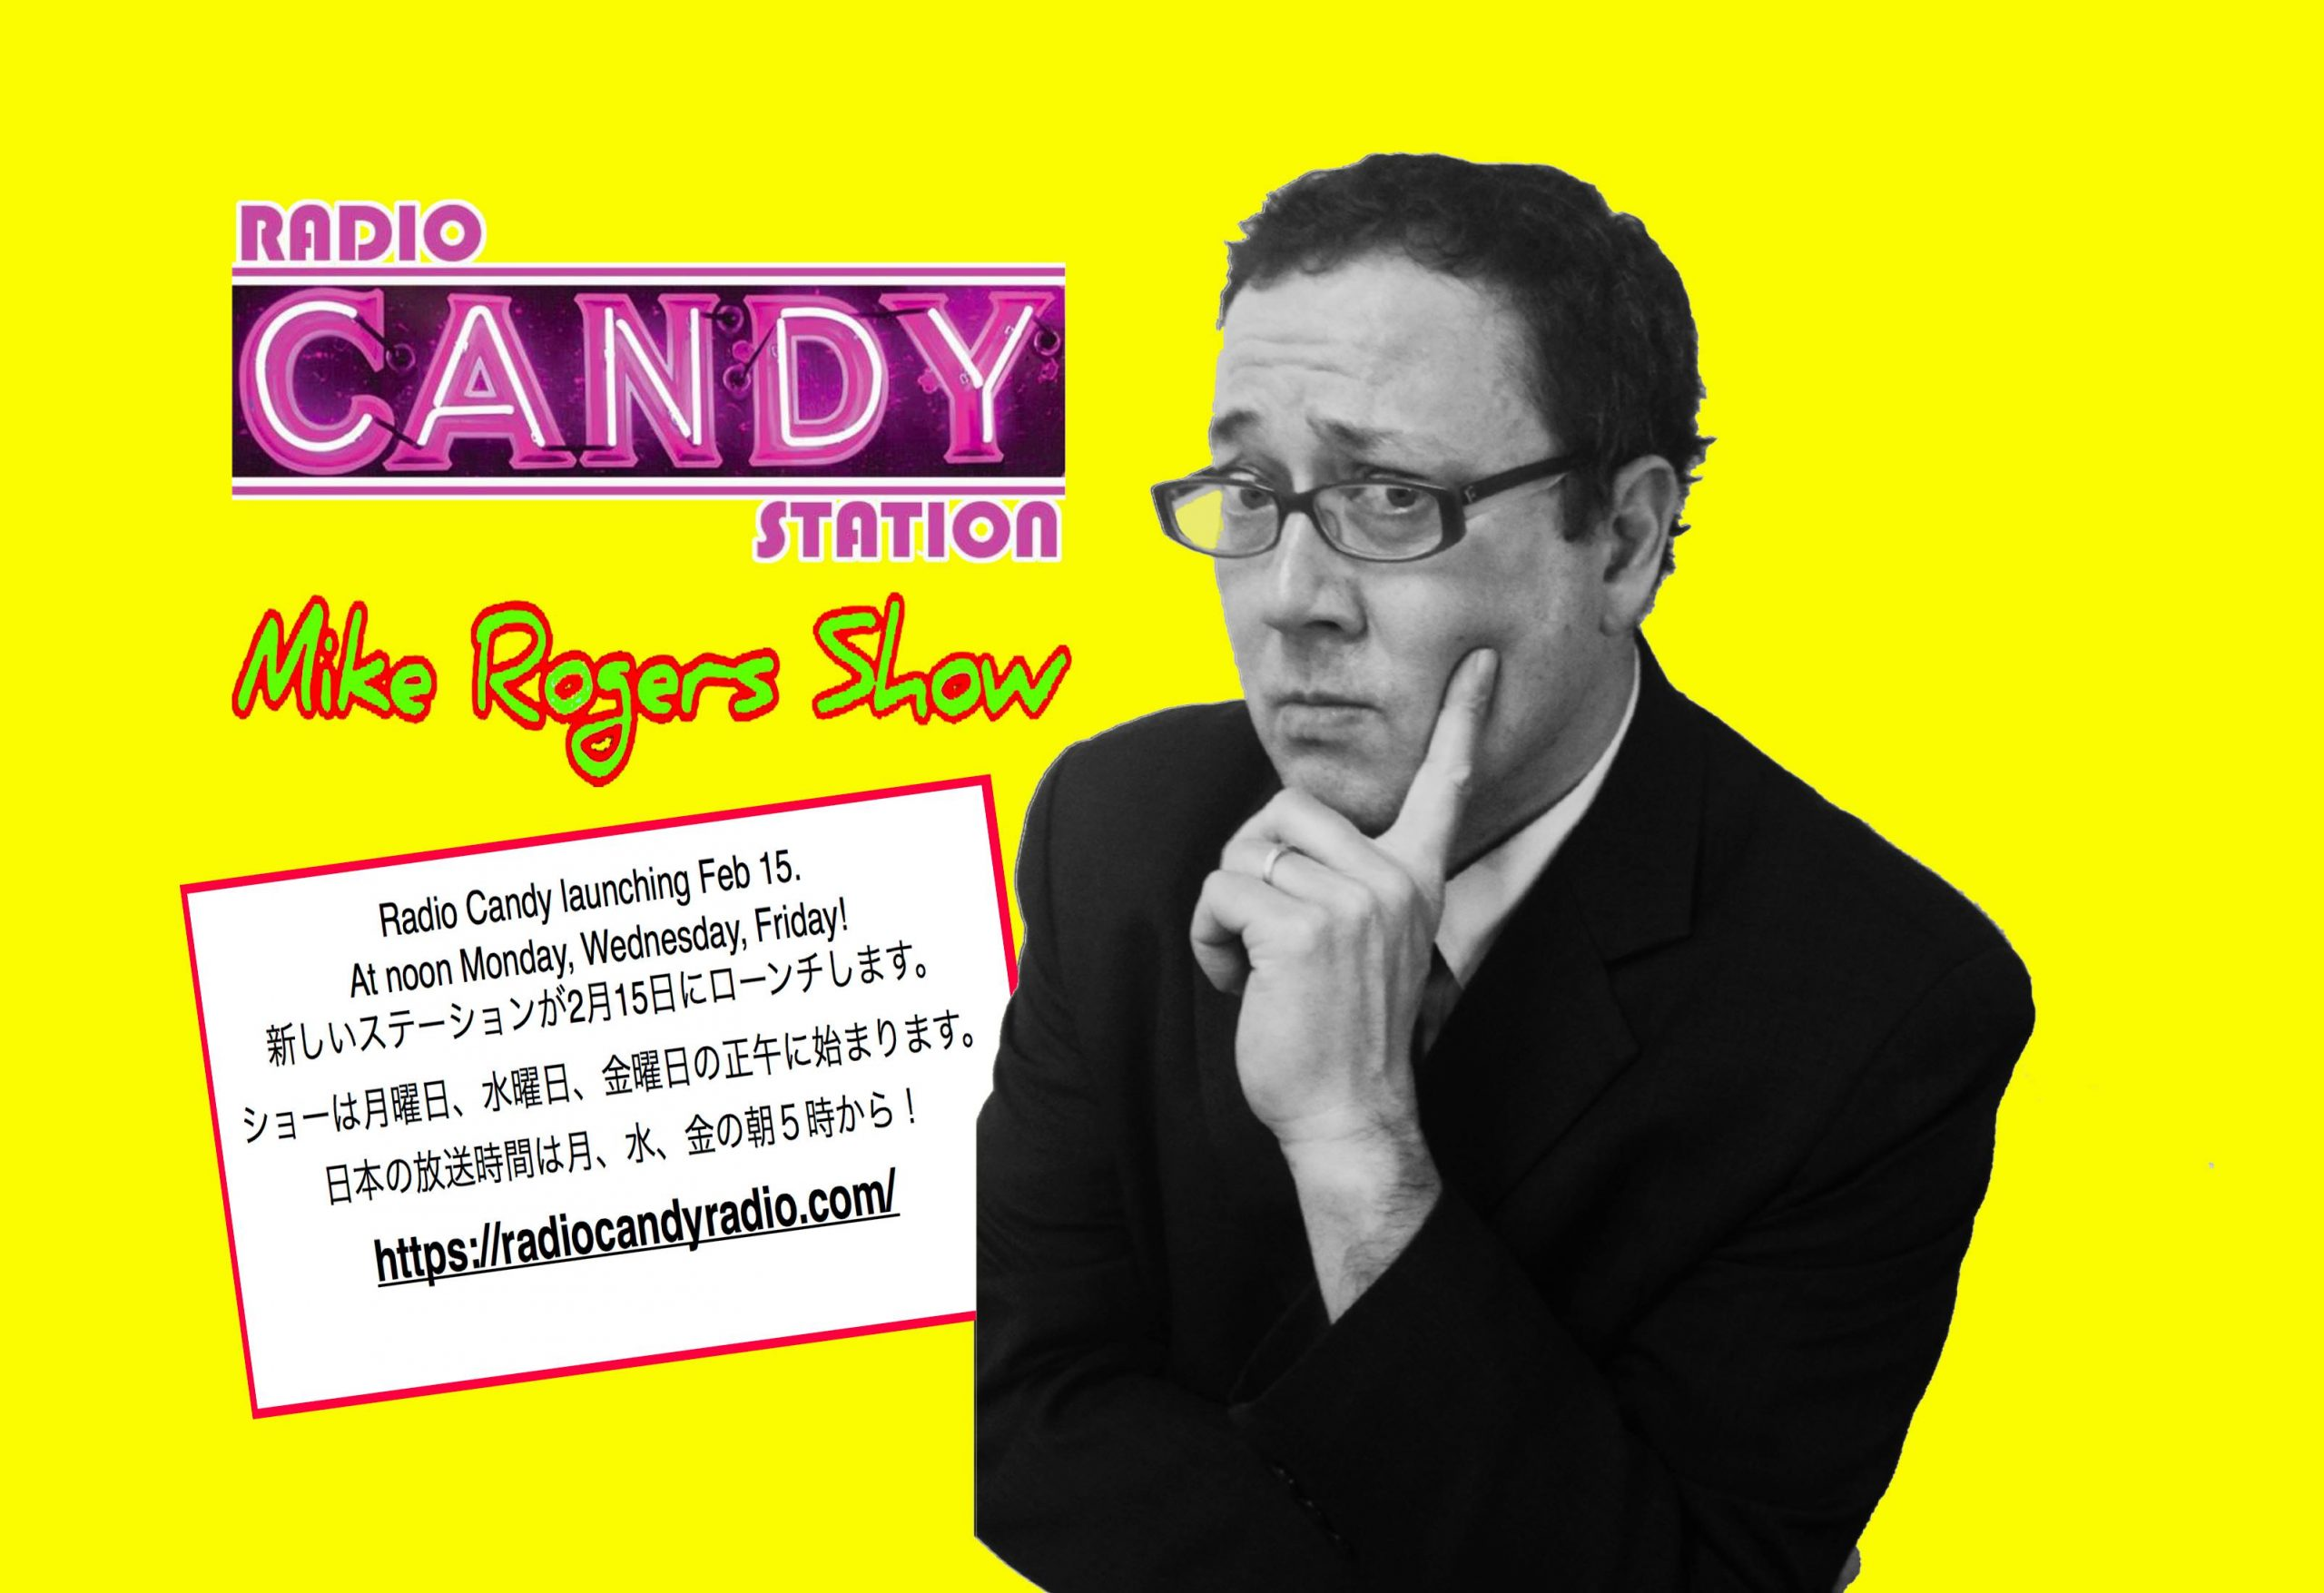 The Mike Rogers Show (Japan) Monday, Wednesdays and Fridays at 12pm PDT